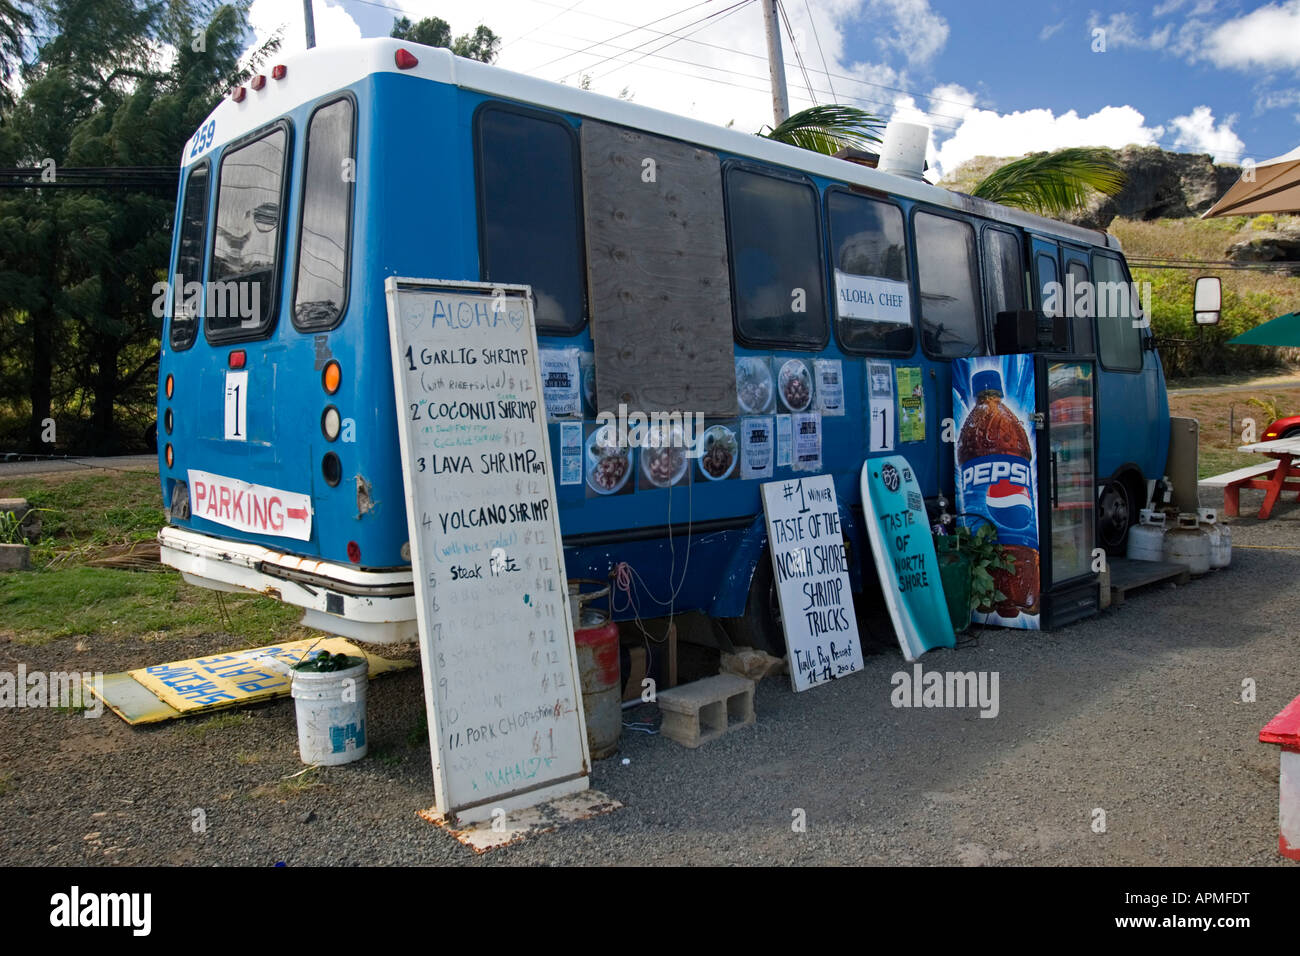 Food Trucks Hawaii Stock Photos & Food Trucks Hawaii Stock Images ...